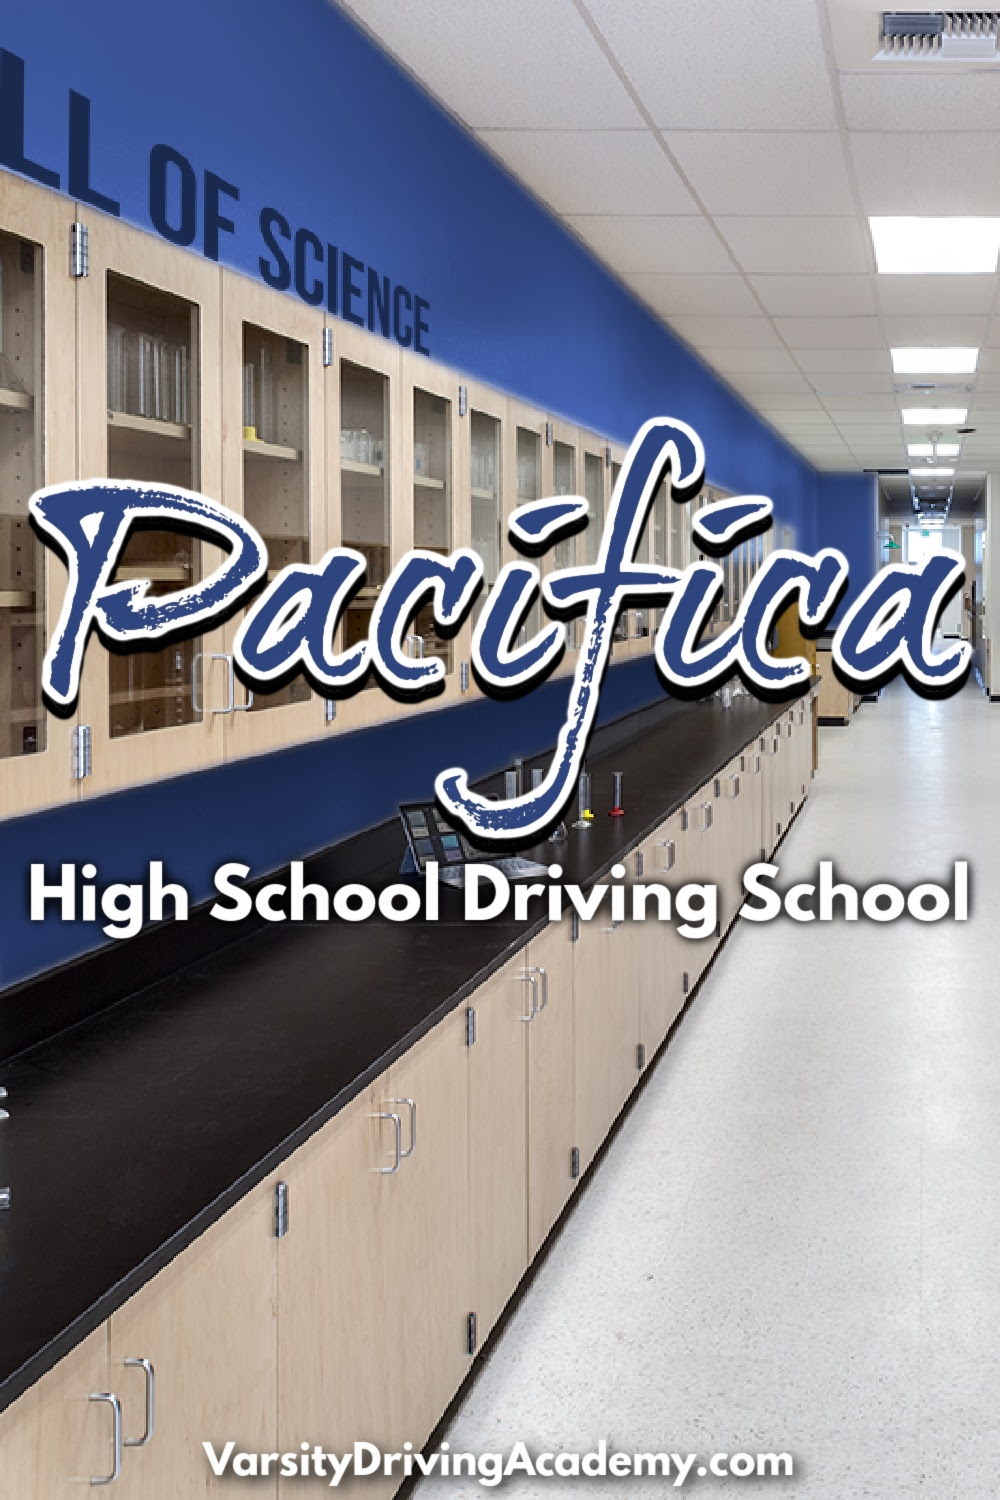 Varsity Driving Academy is the best Pacifica High School driving school thanks to the many services students can take advantage of.